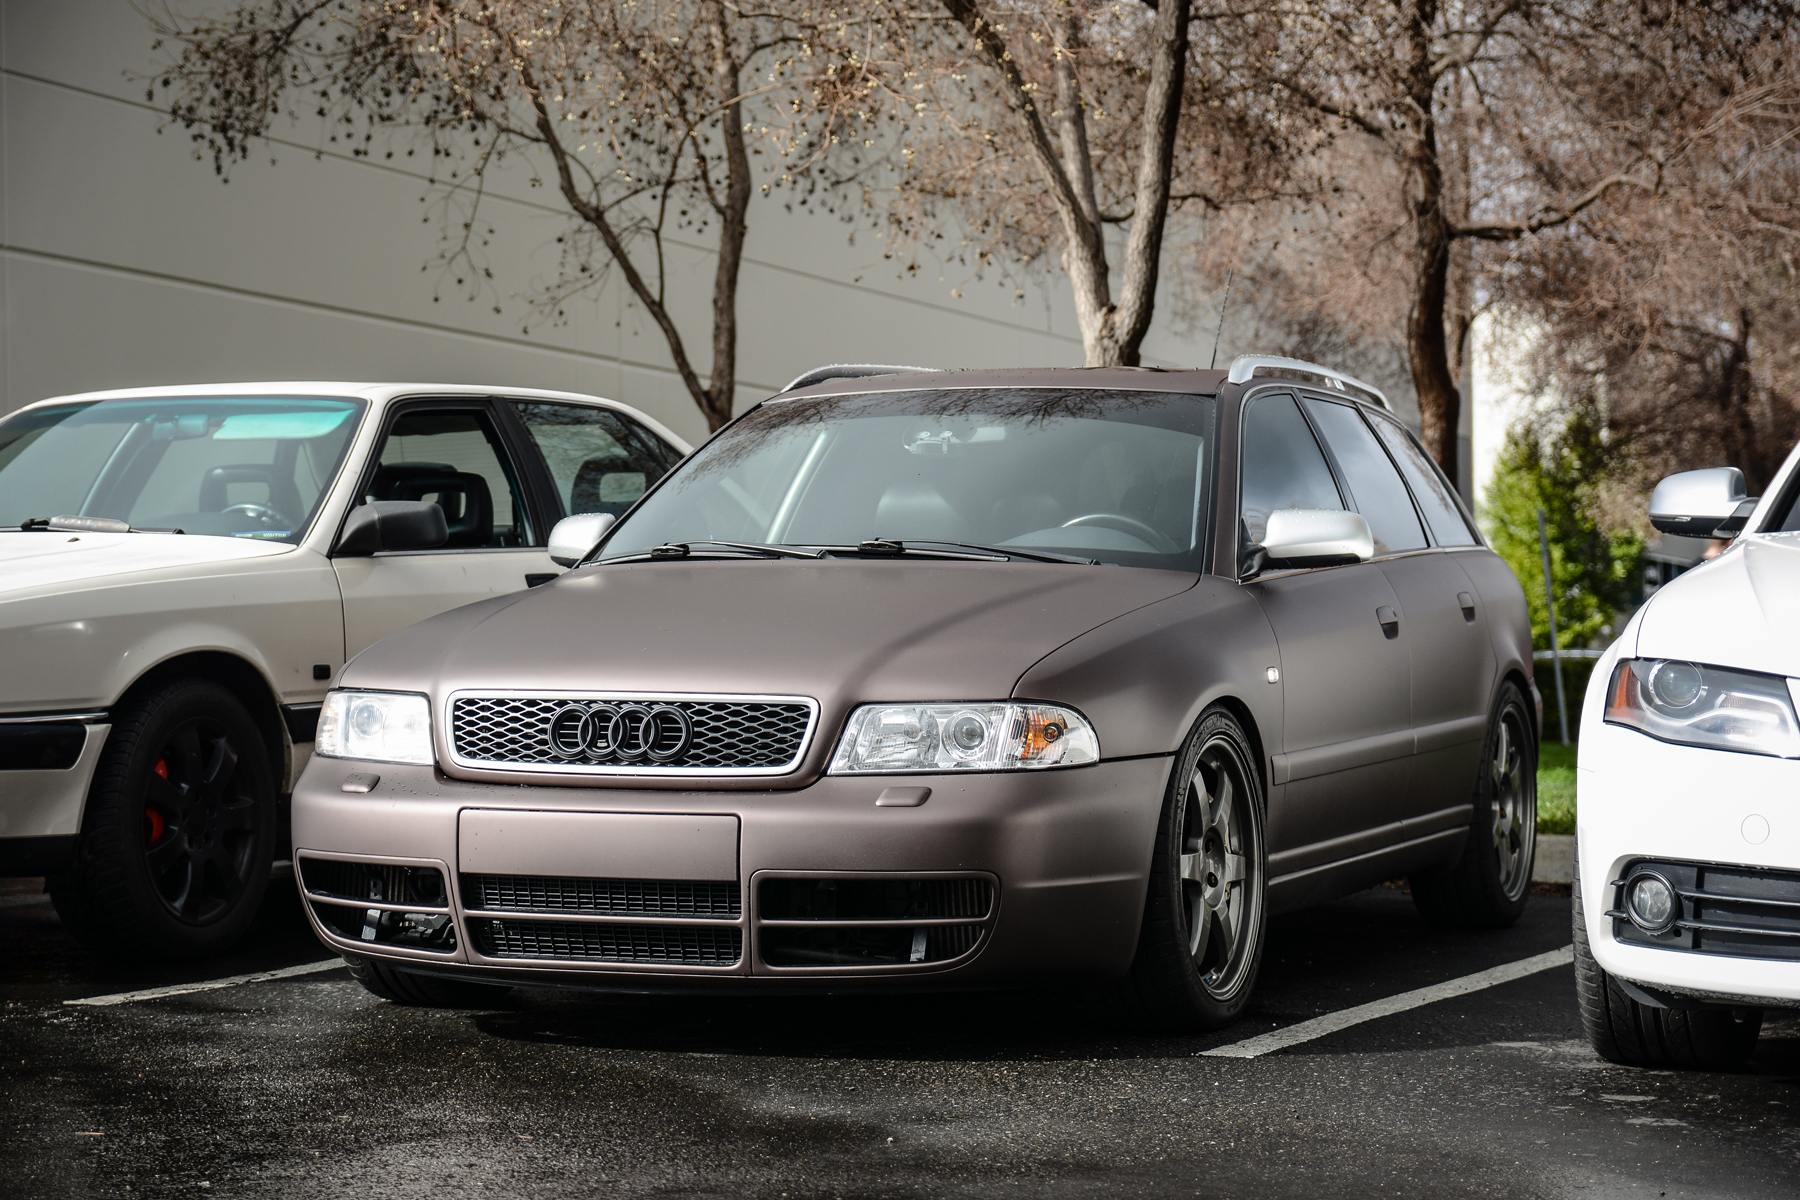 NorCal Audi Club's WinterFest 2016 Get-Together - Hosted by 034Motorsport